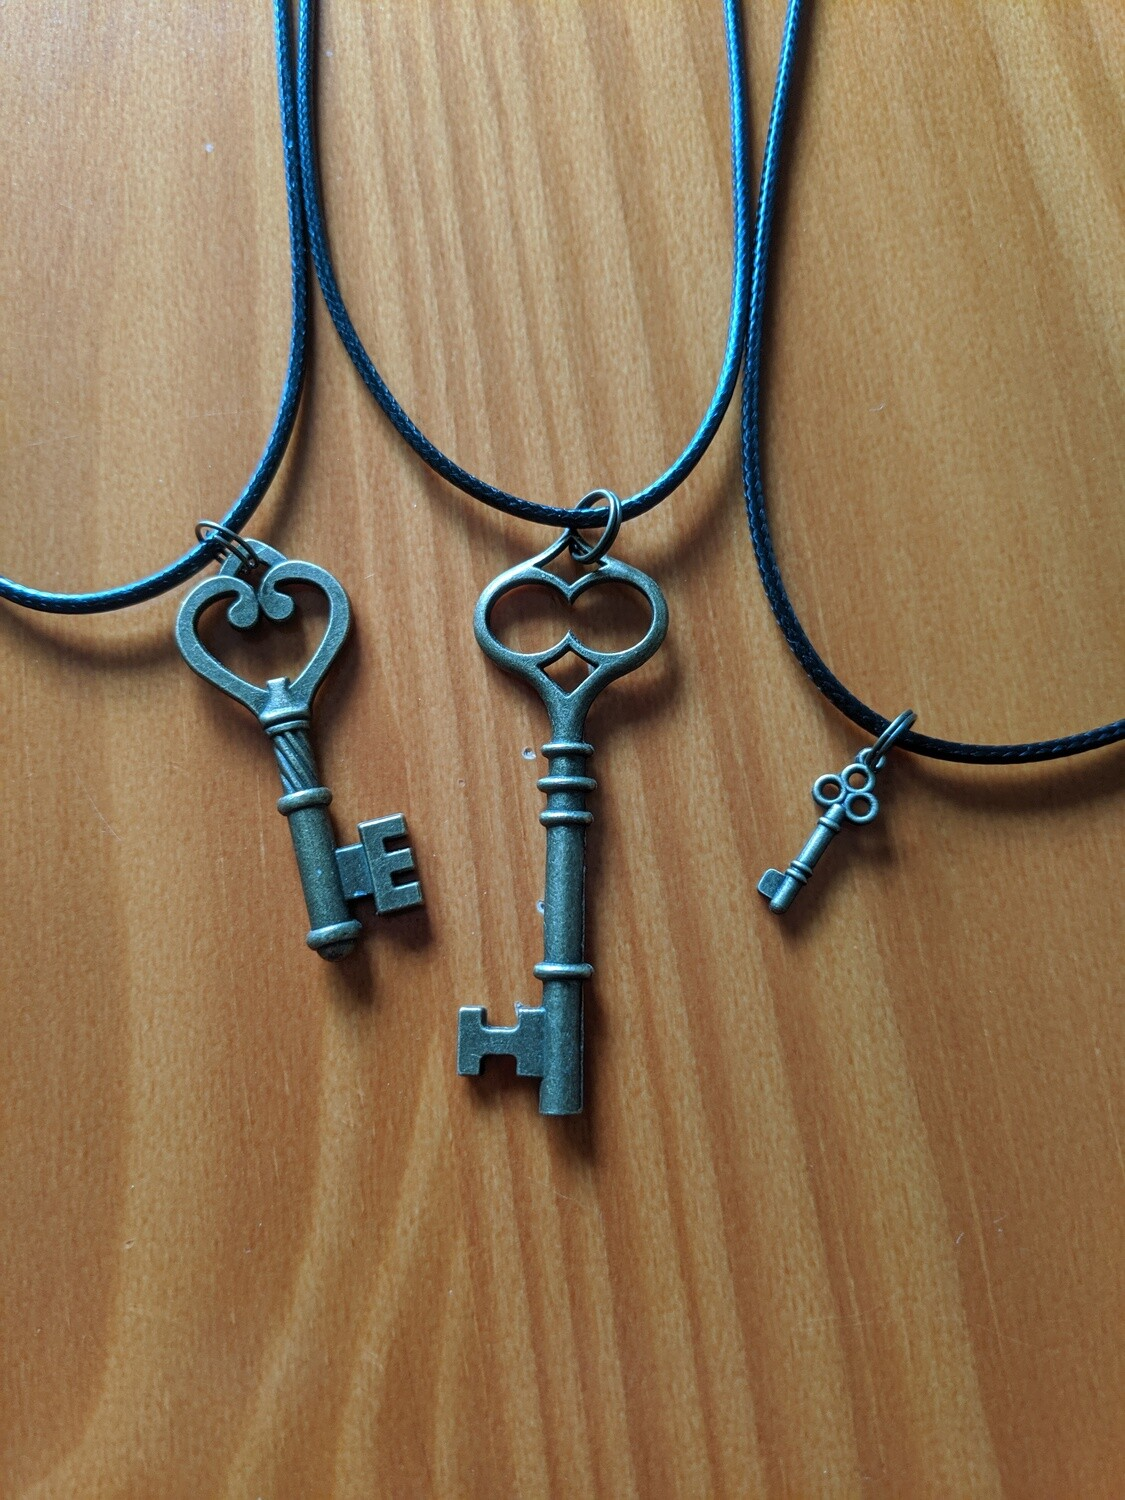 Leviathan Key Spell Kit (Limited Stock)